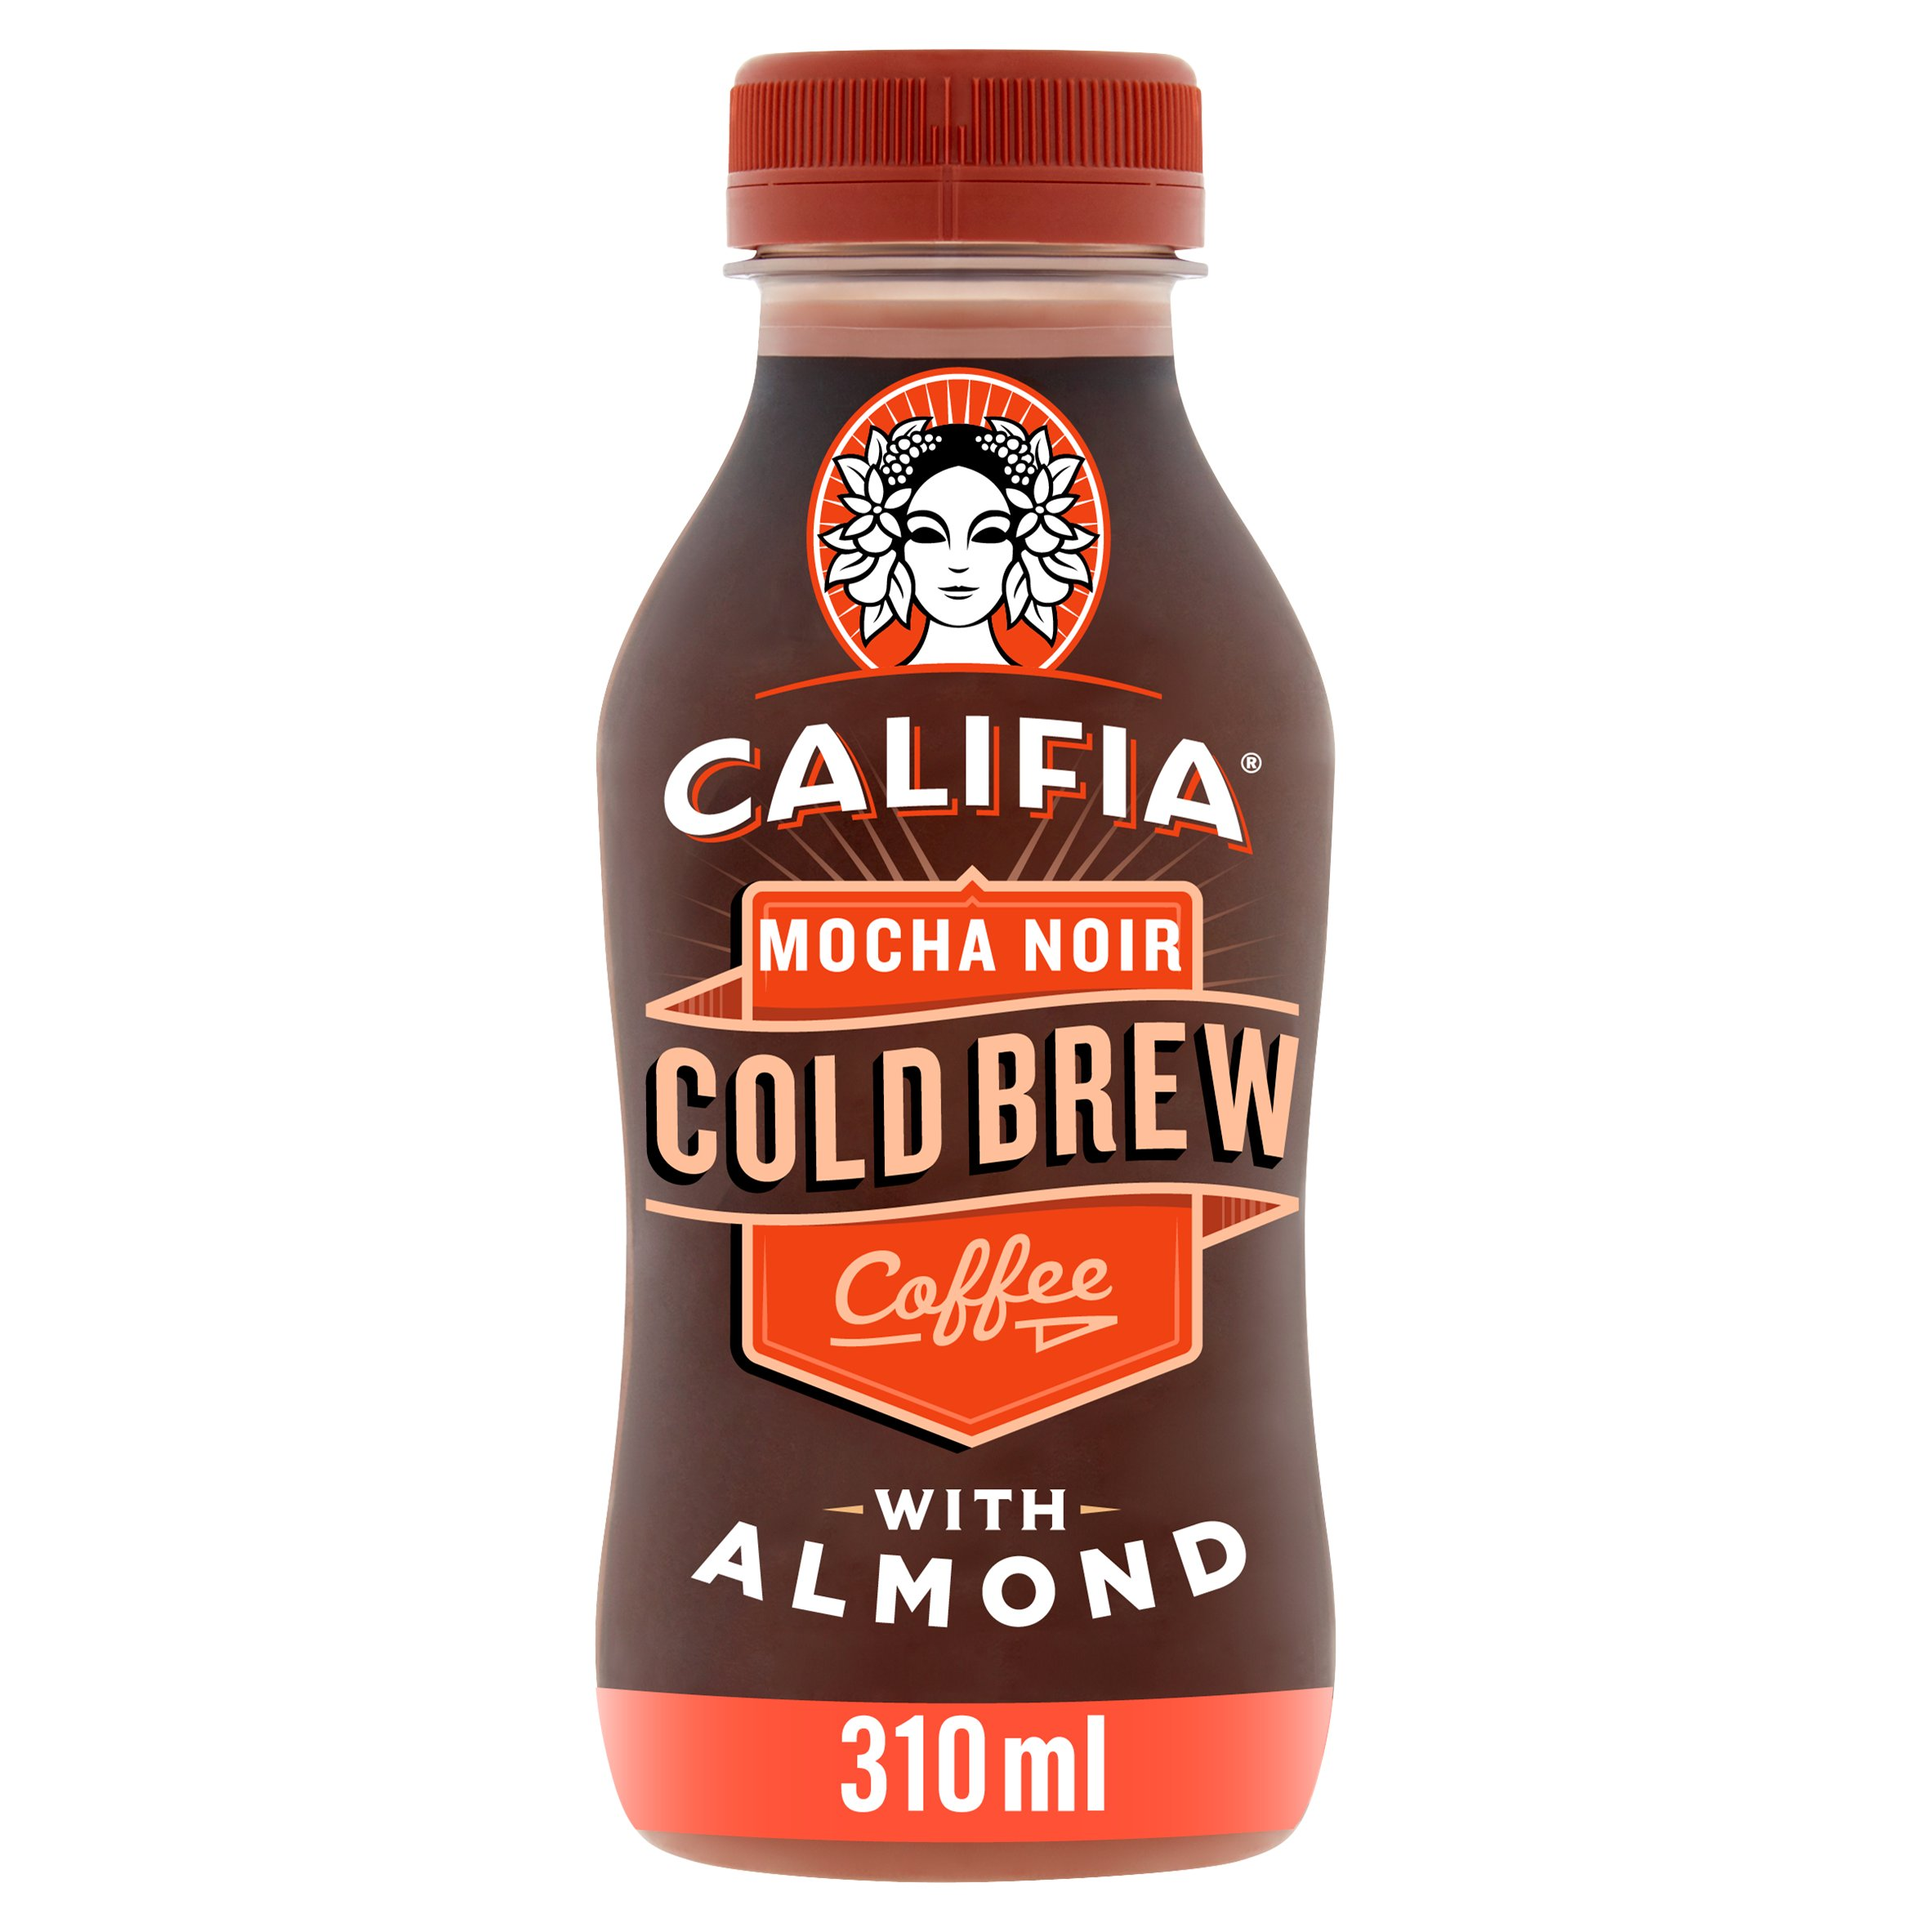 Califia Mocha Noir Cold Brew Coffee Dairy Free 310Ml